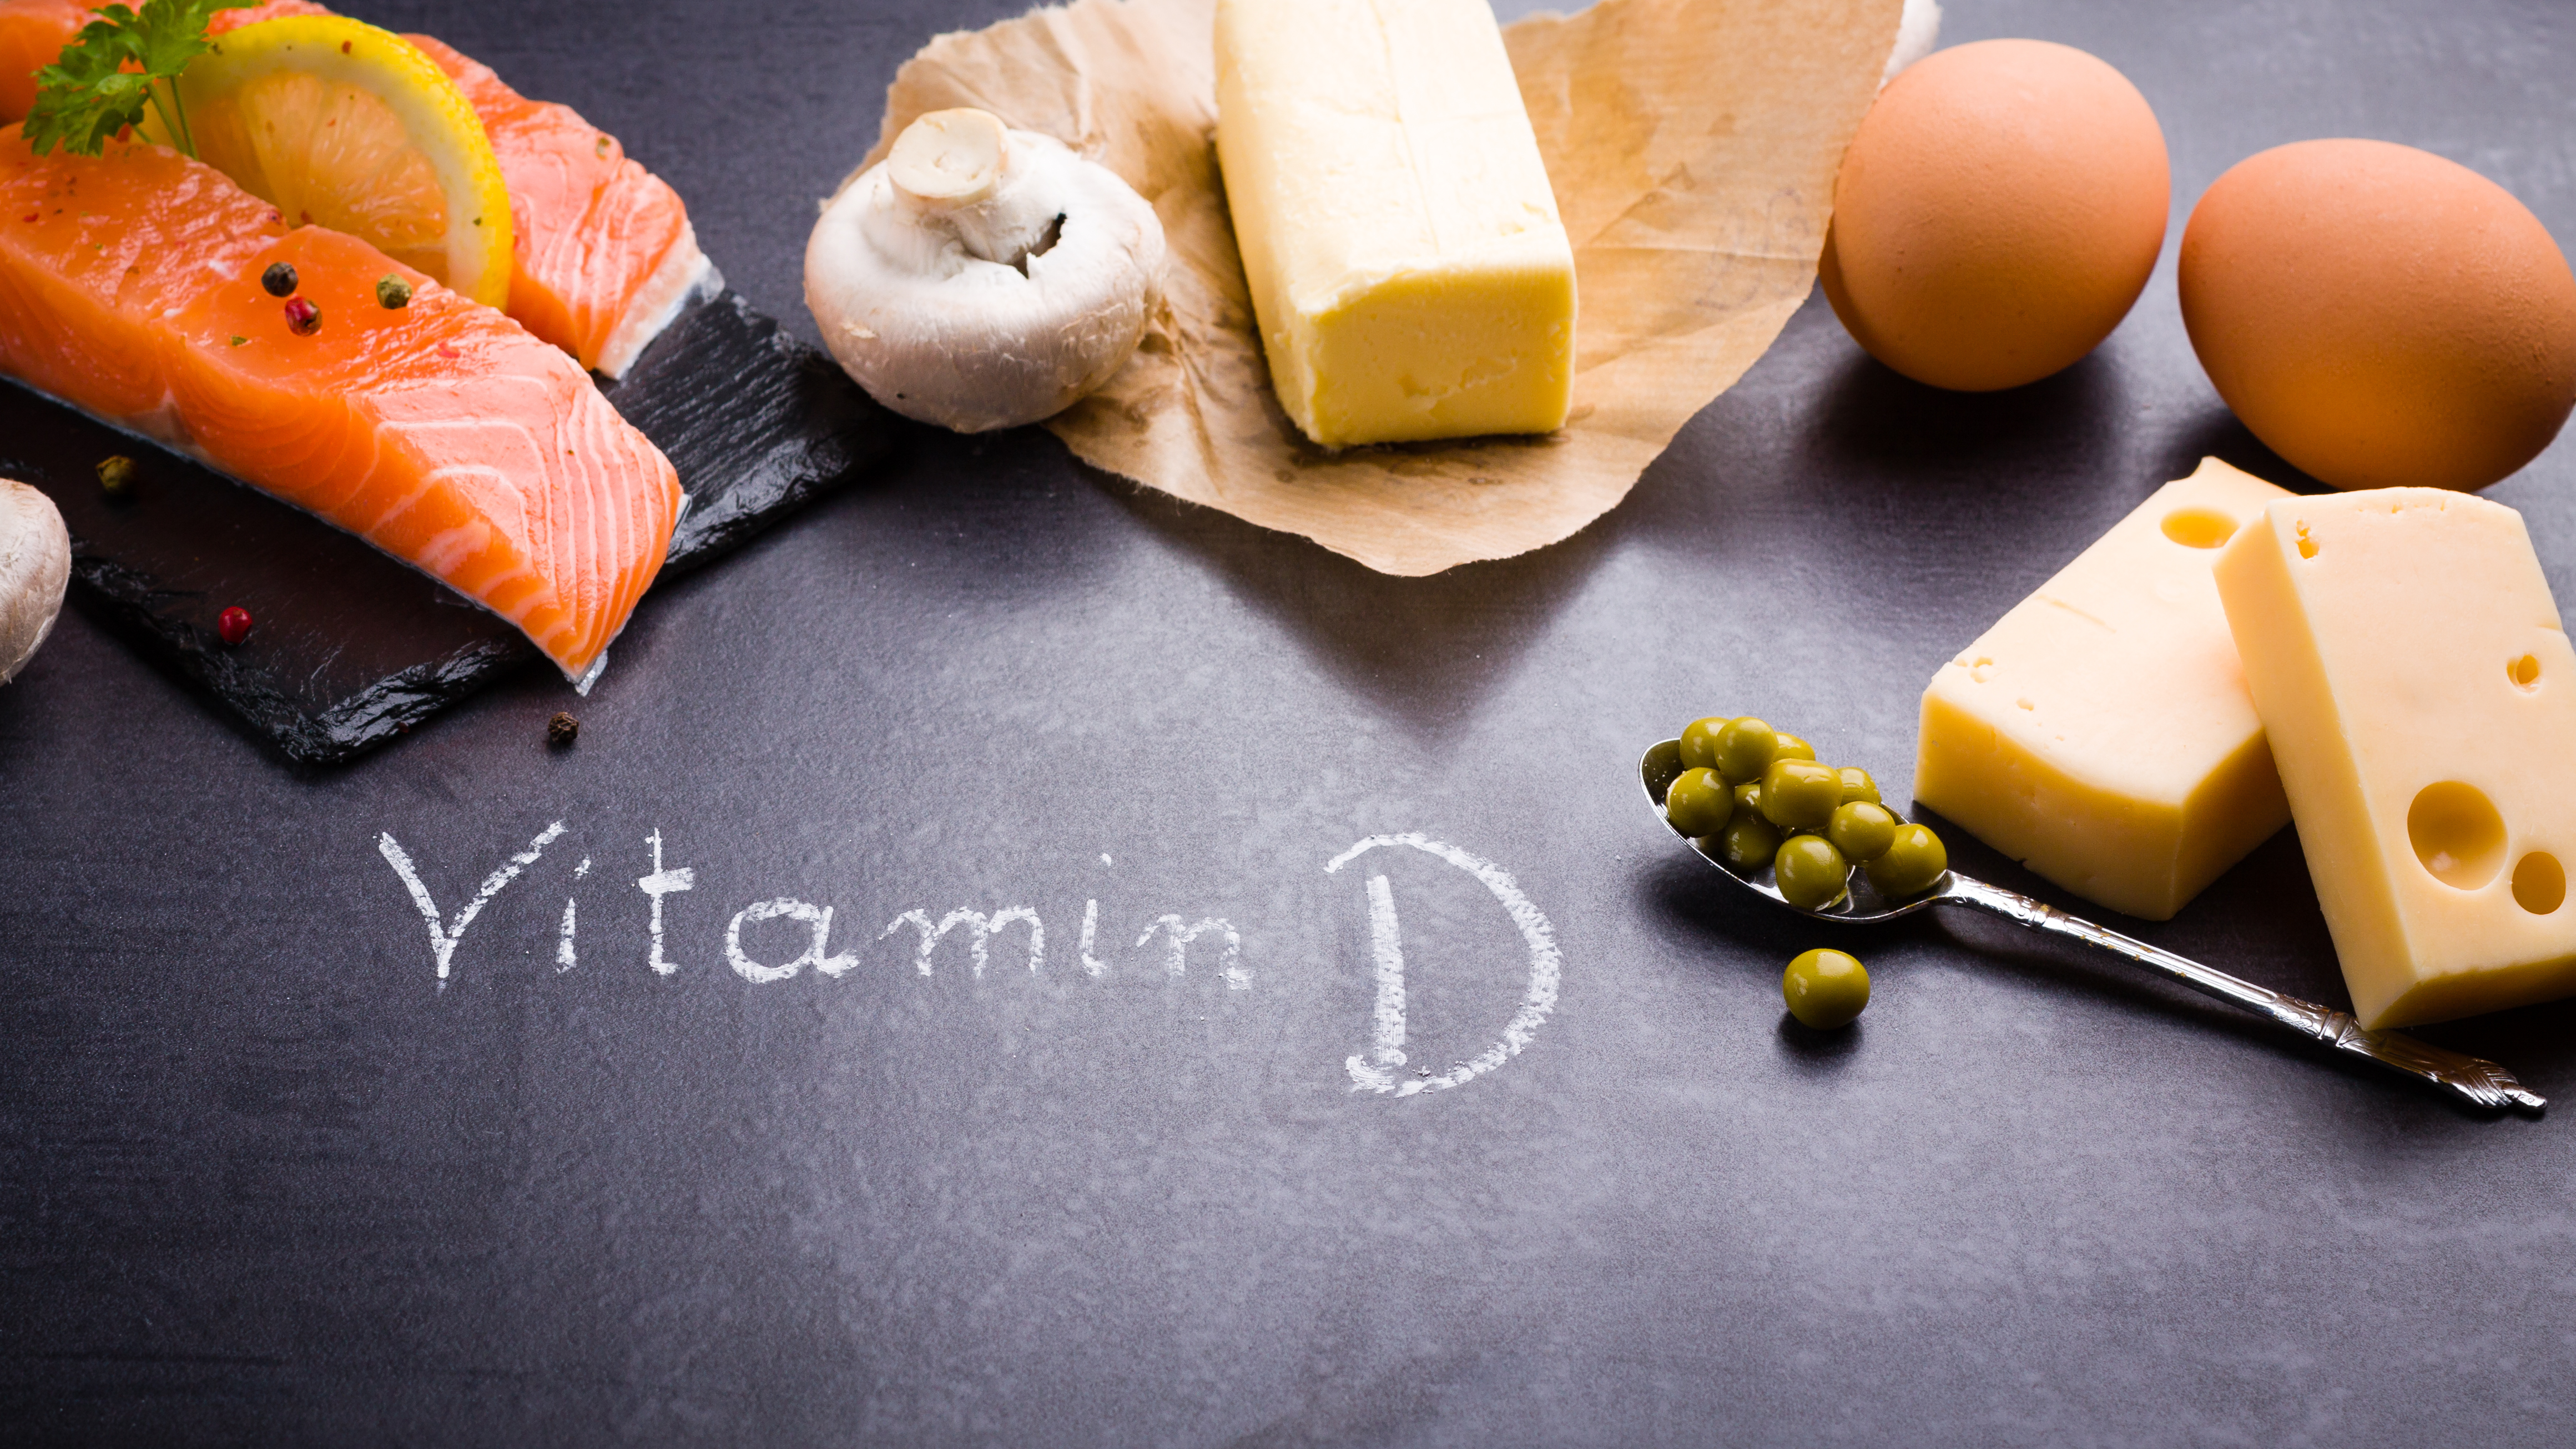 Two studies show importance of Vitamin D with triple negative breast cancer